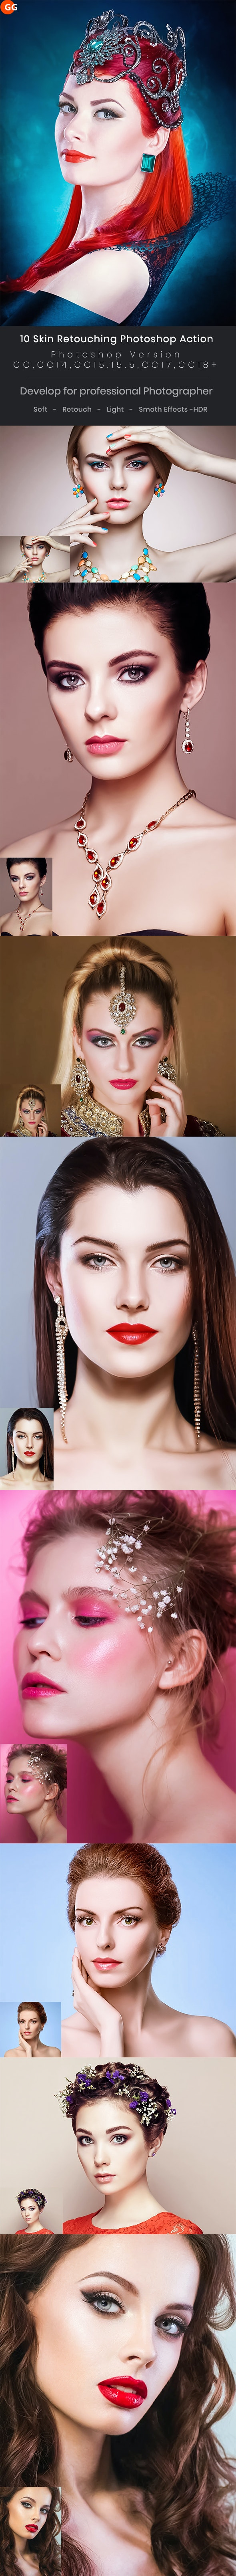 10 Skin Retouching Photoshop Action - Photo Effects Actions